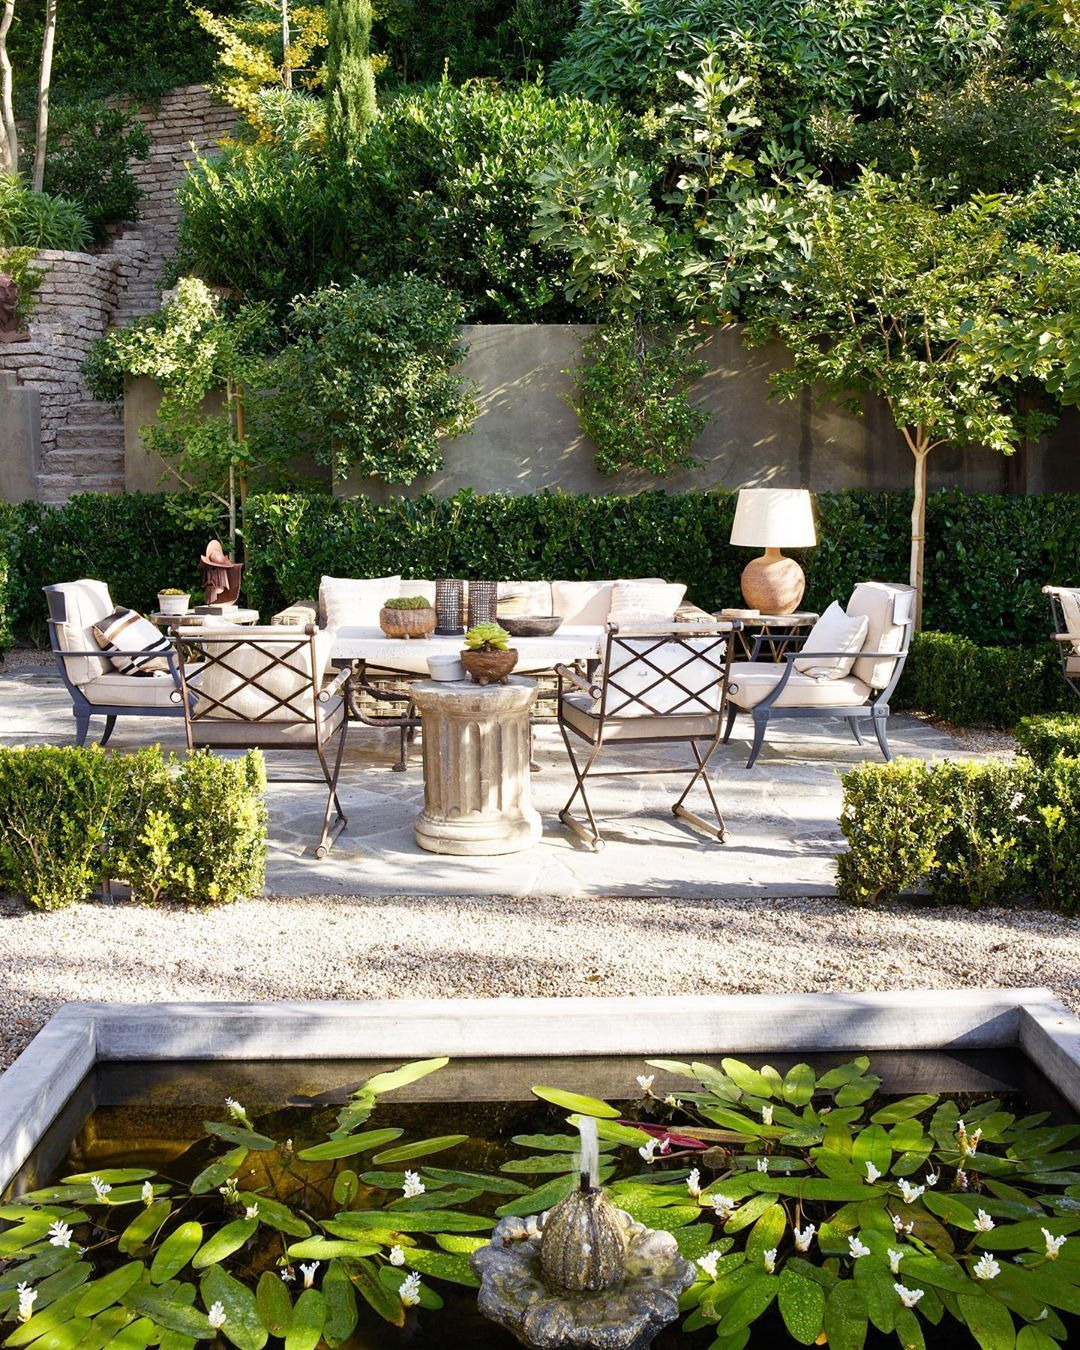 Architectural Digest On Instagram Since Establishing His Paris Based Architecture And Interior Design Firm At Age 26 Nearly Backyard Landscape Design Patio